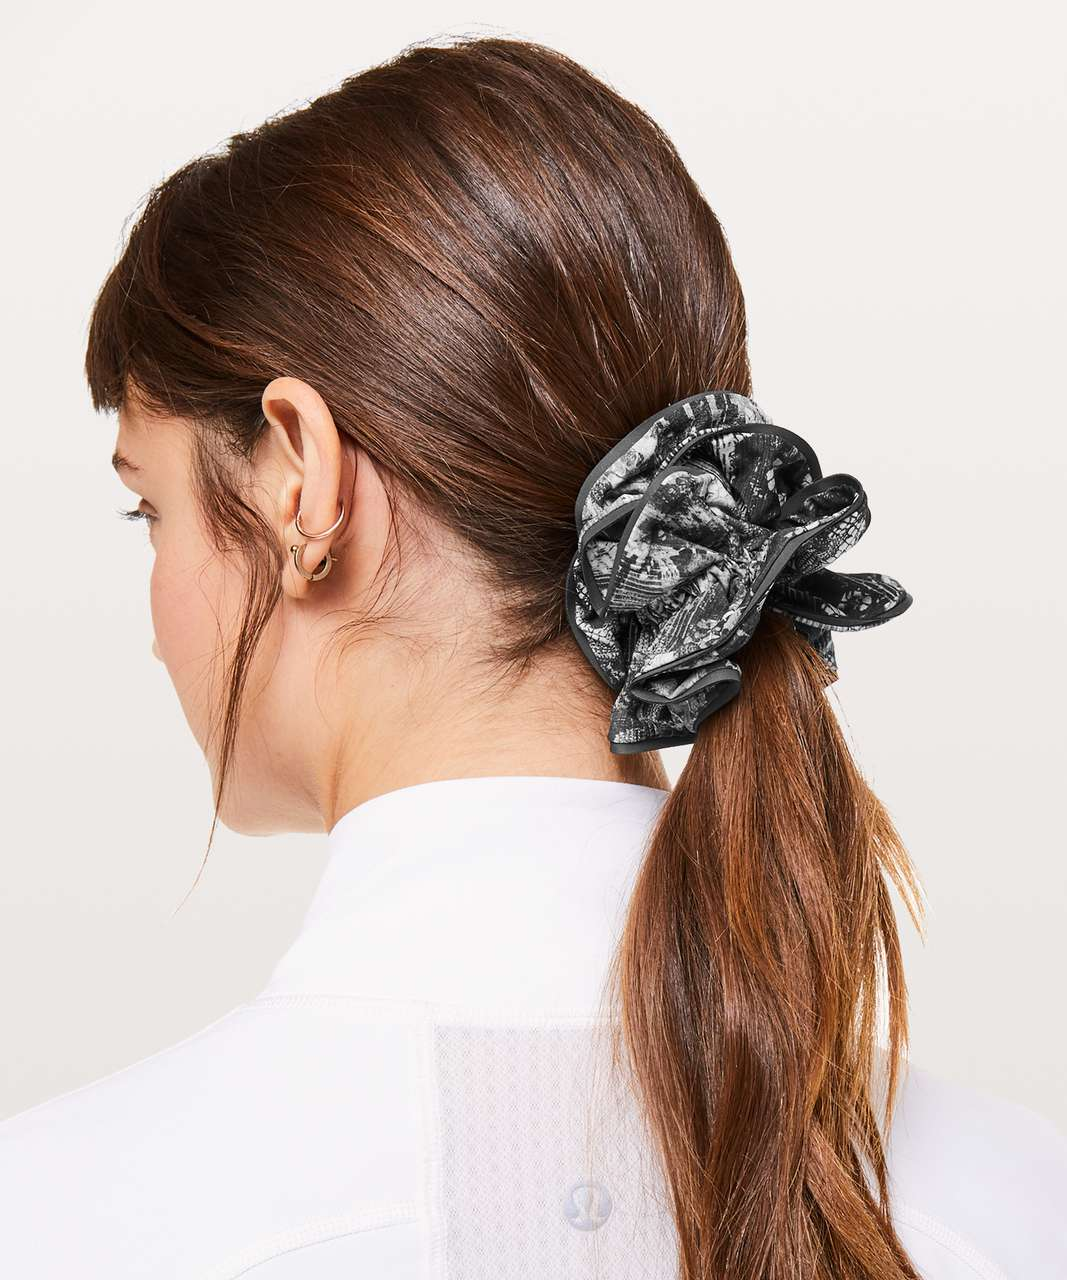 Lululemon Light Locks Scrunchie - Masked Lace Starlight Black